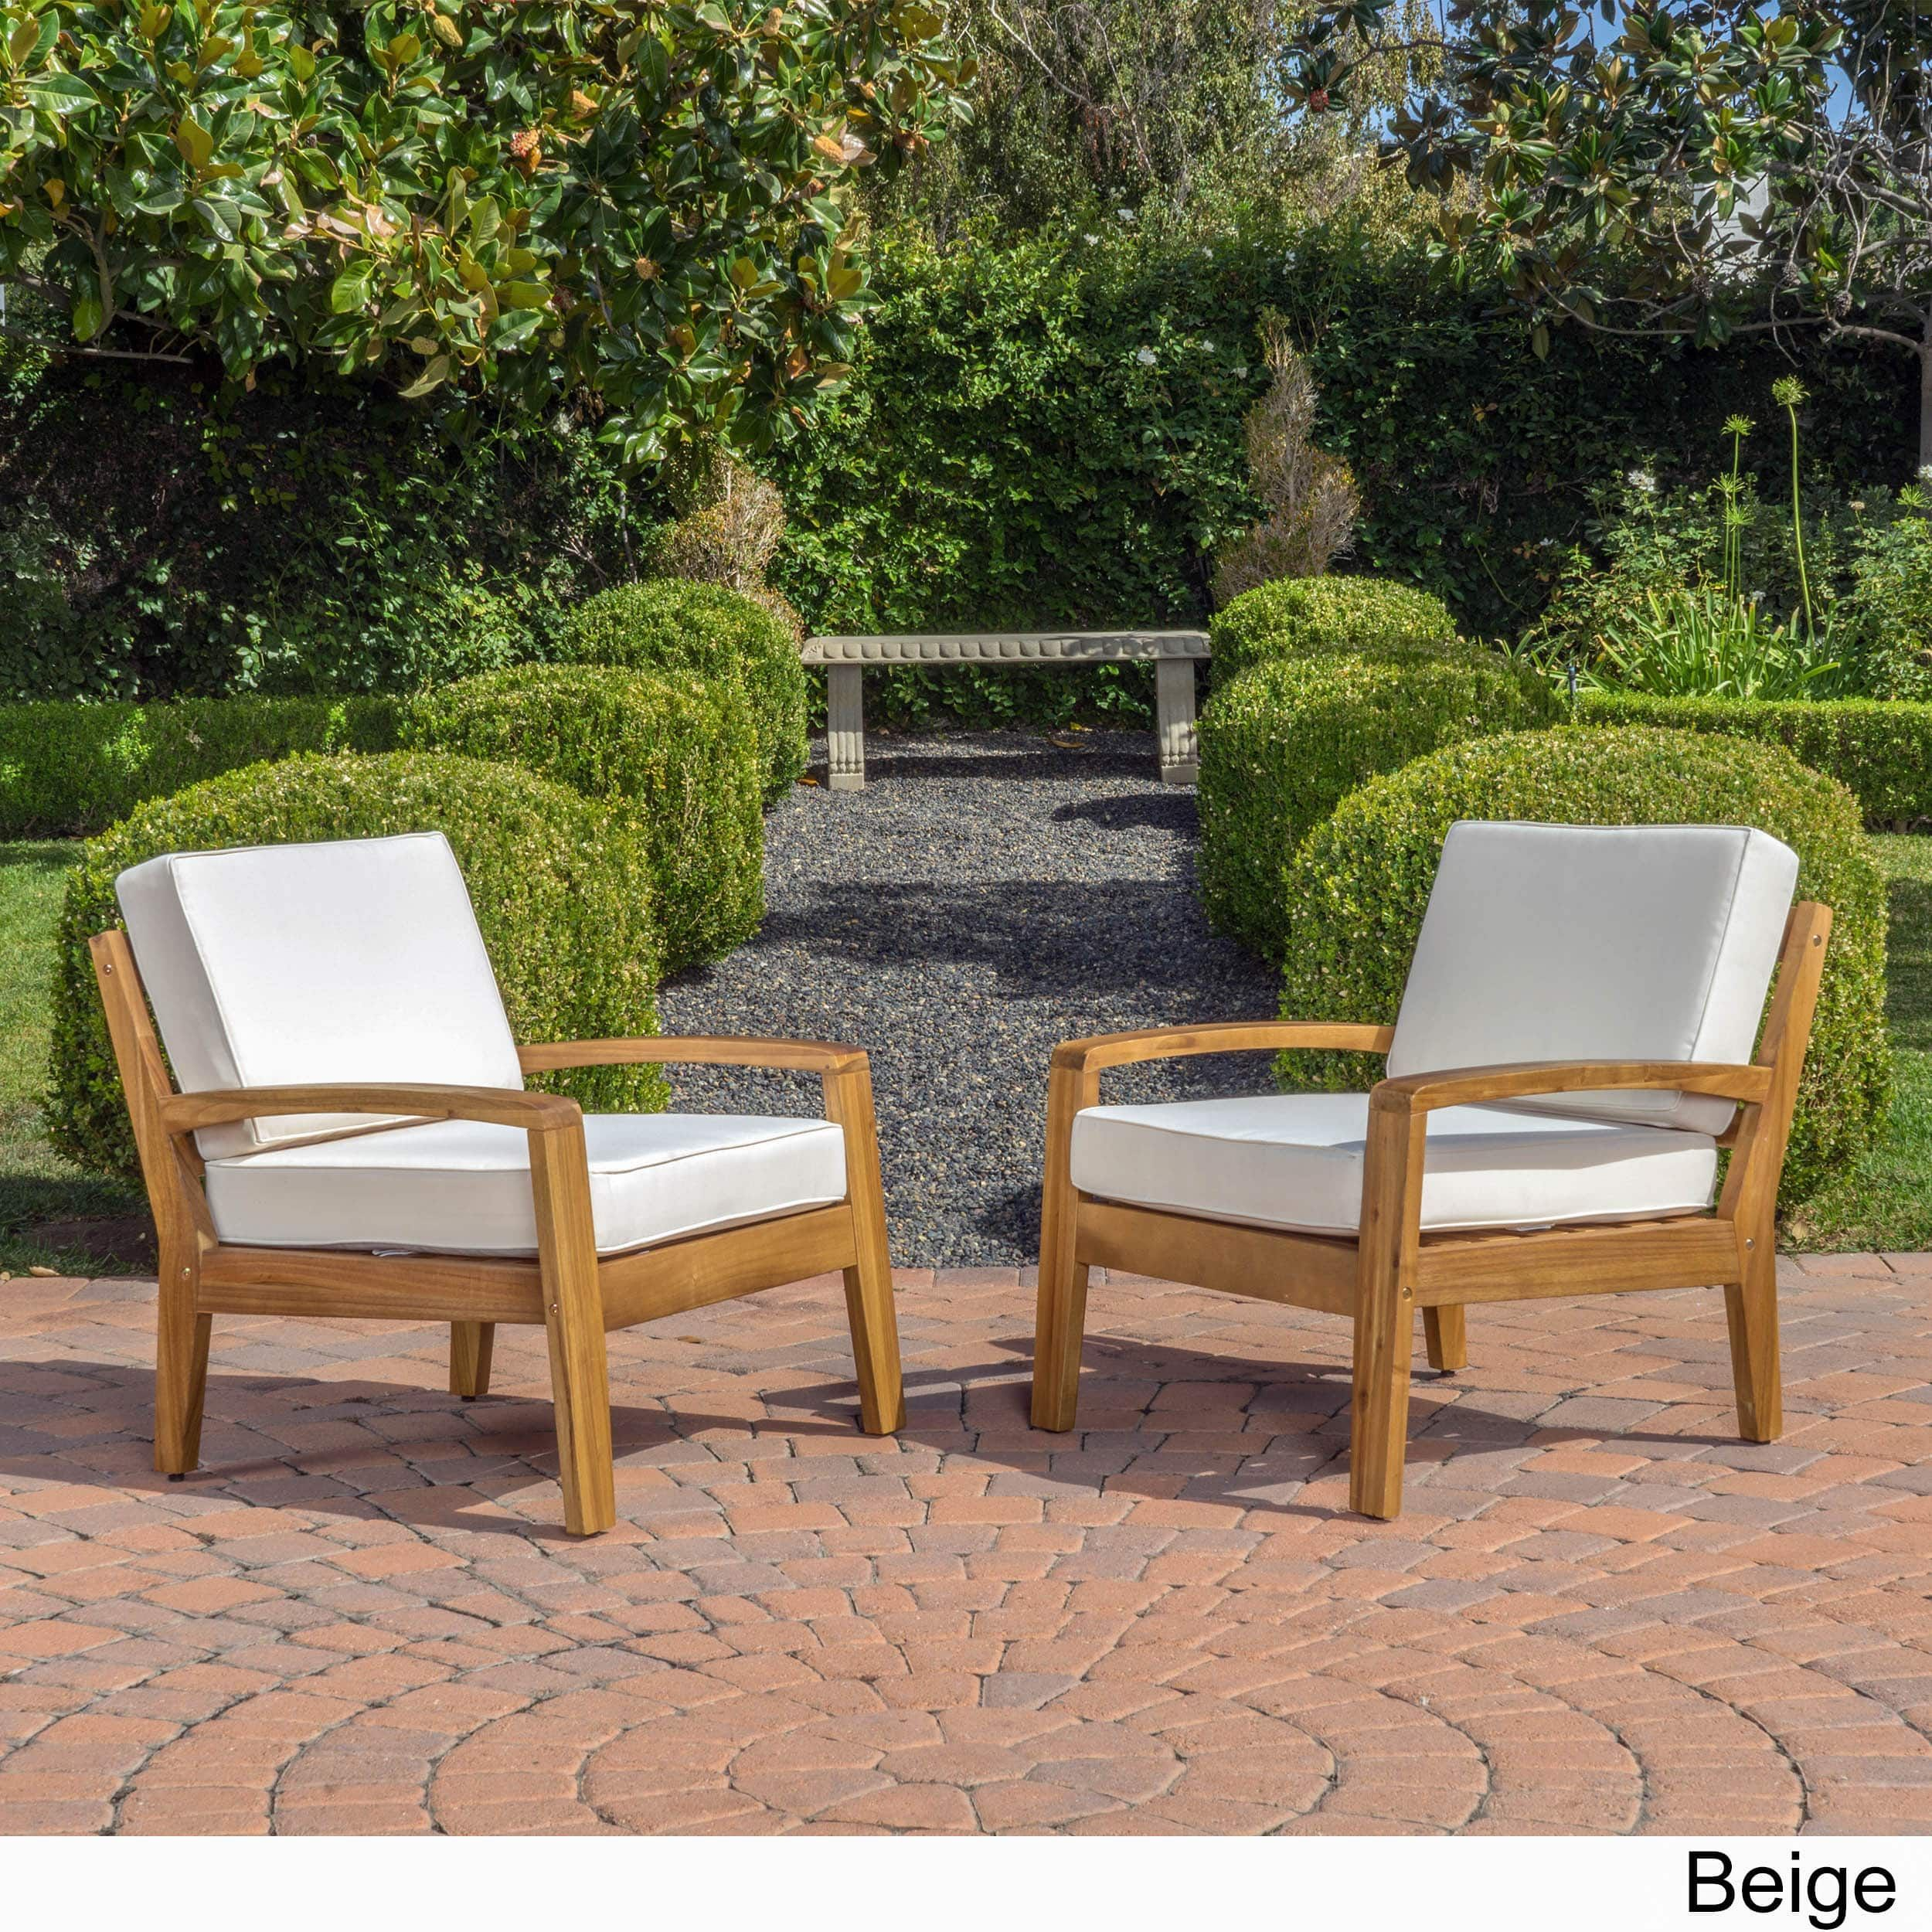 Christopher Knight Patio Furniture.Grenada Outdoor Wooden Club Chair W Cushions Set Of 2 By